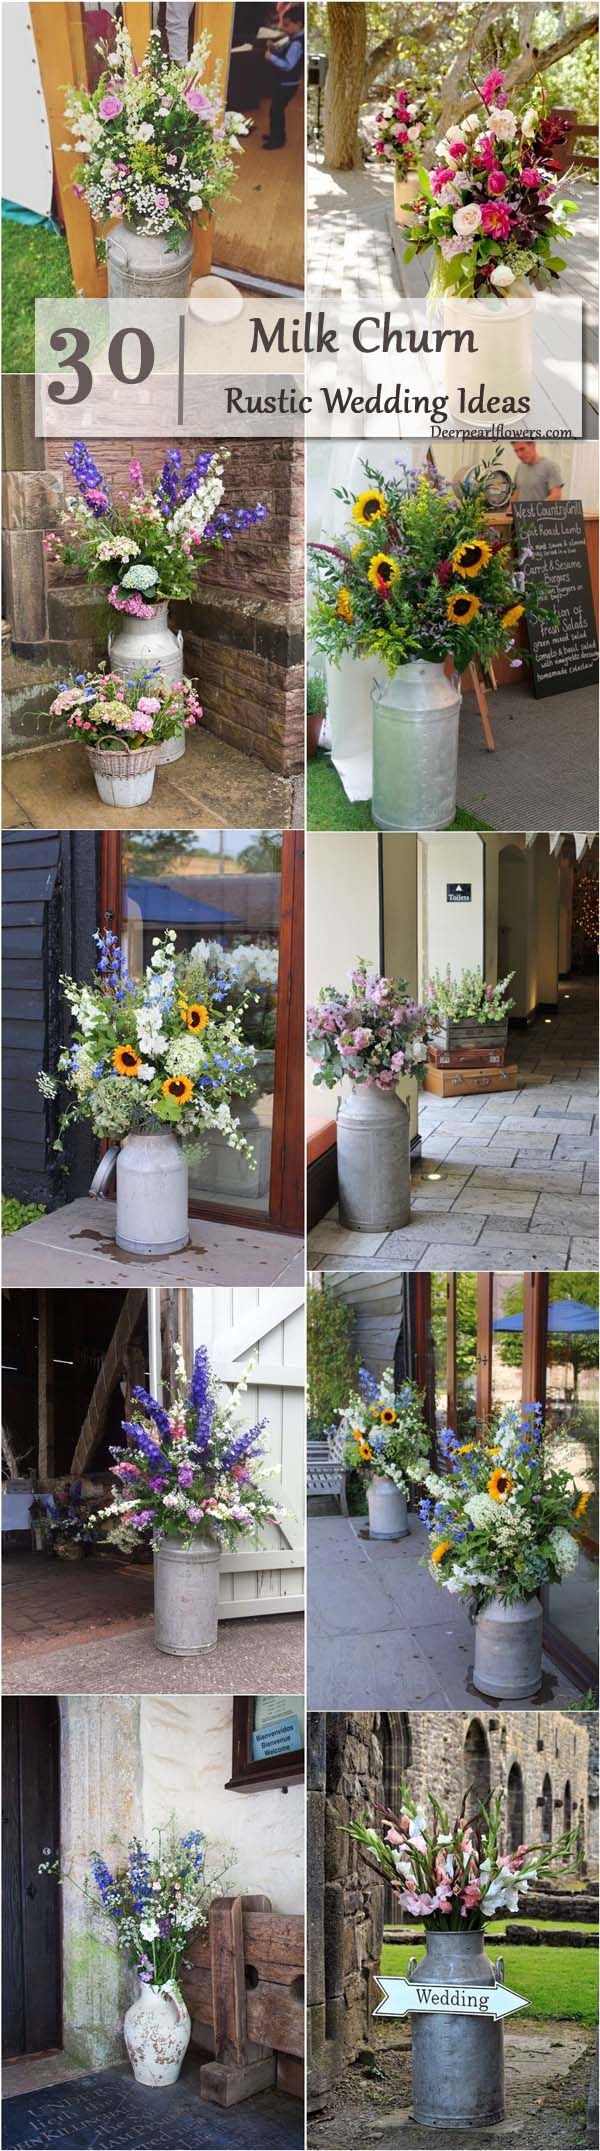 Decorative Milk Urn 30 Rustic Country Wedding Ideas With Milk Churn Deer Pearl